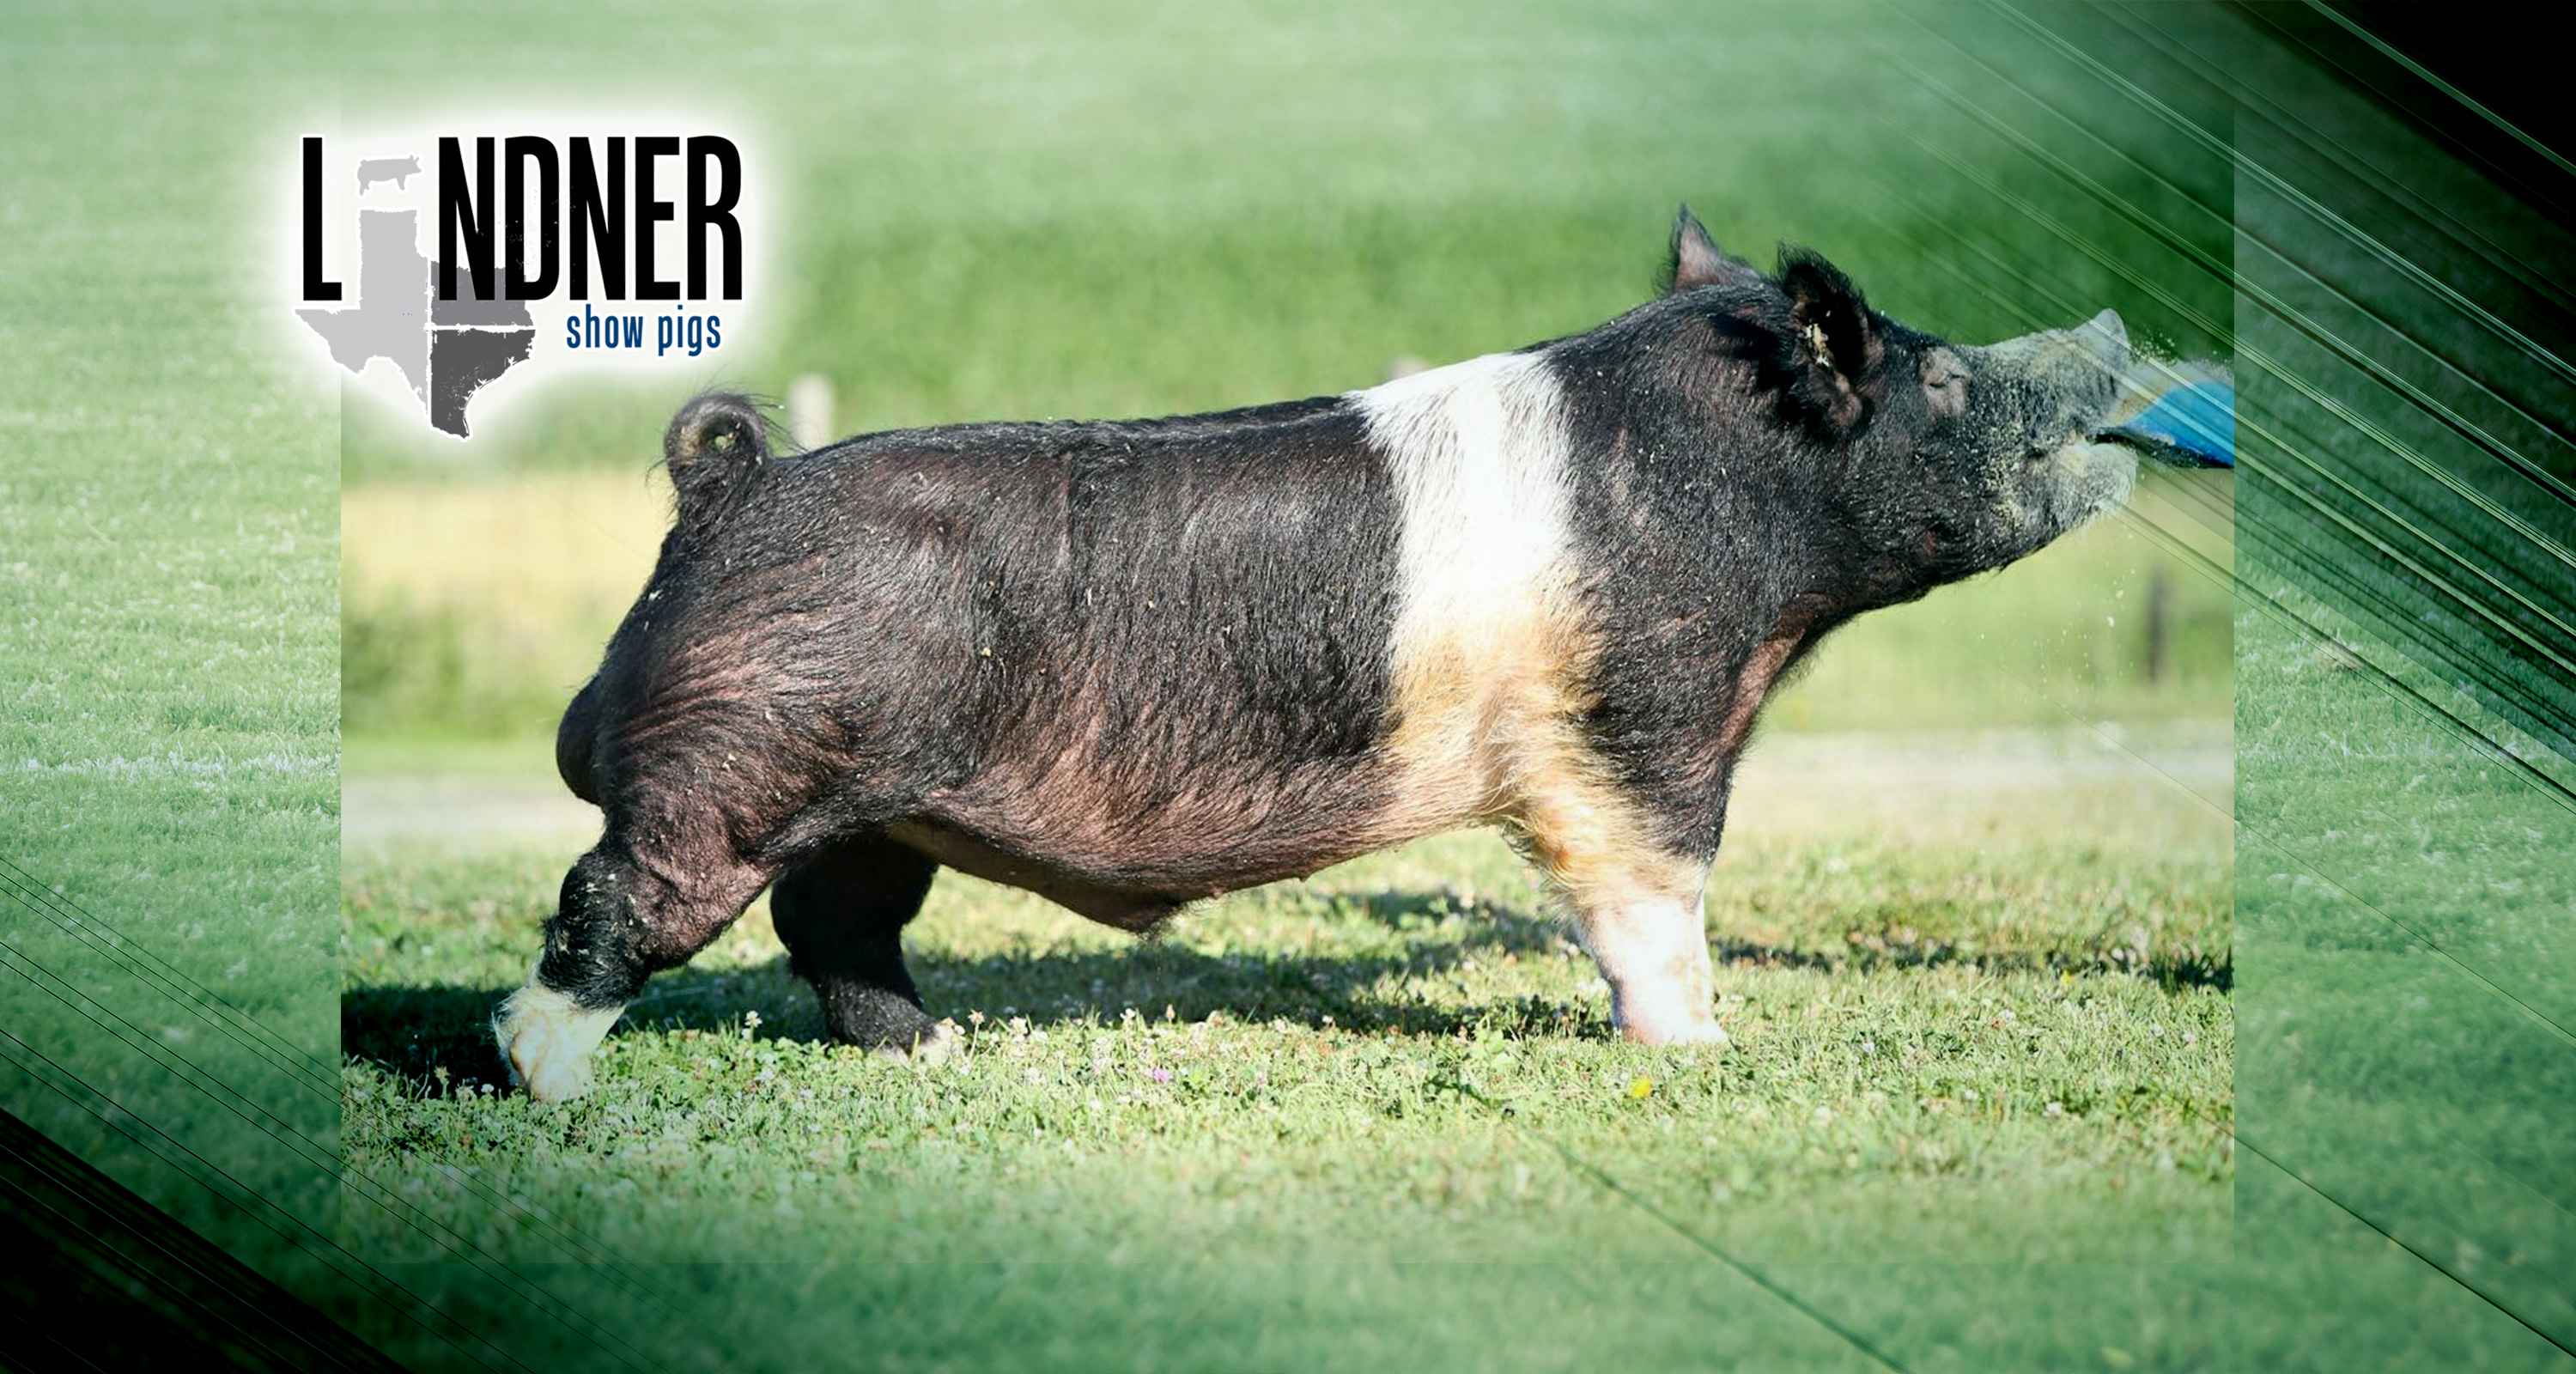 Sires Vendetta Lindner Show Pigs